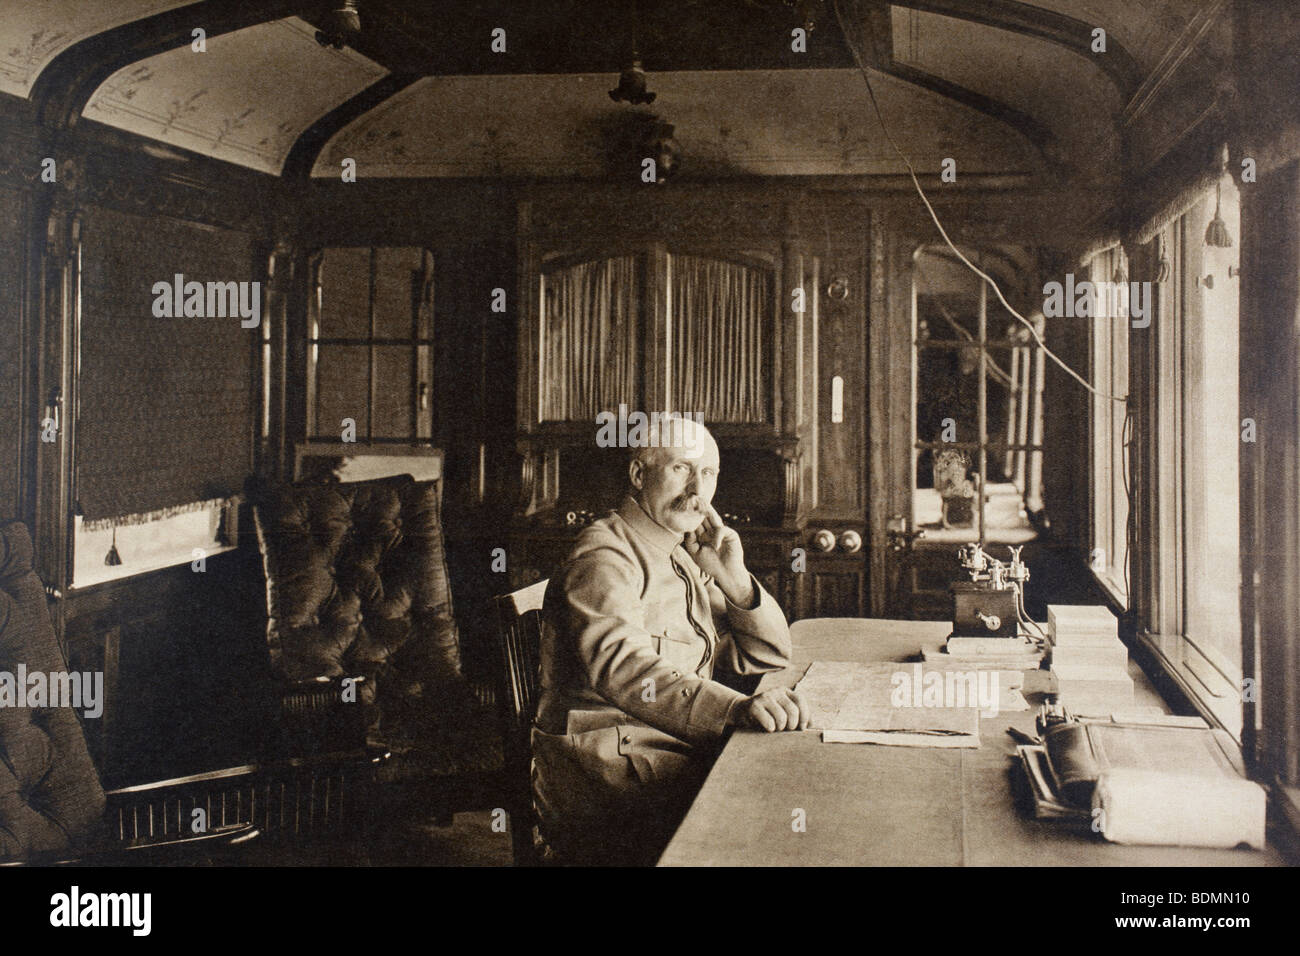 French General Petain in his railway carriage office near the Western Front in autumn 1915. - Stock Image